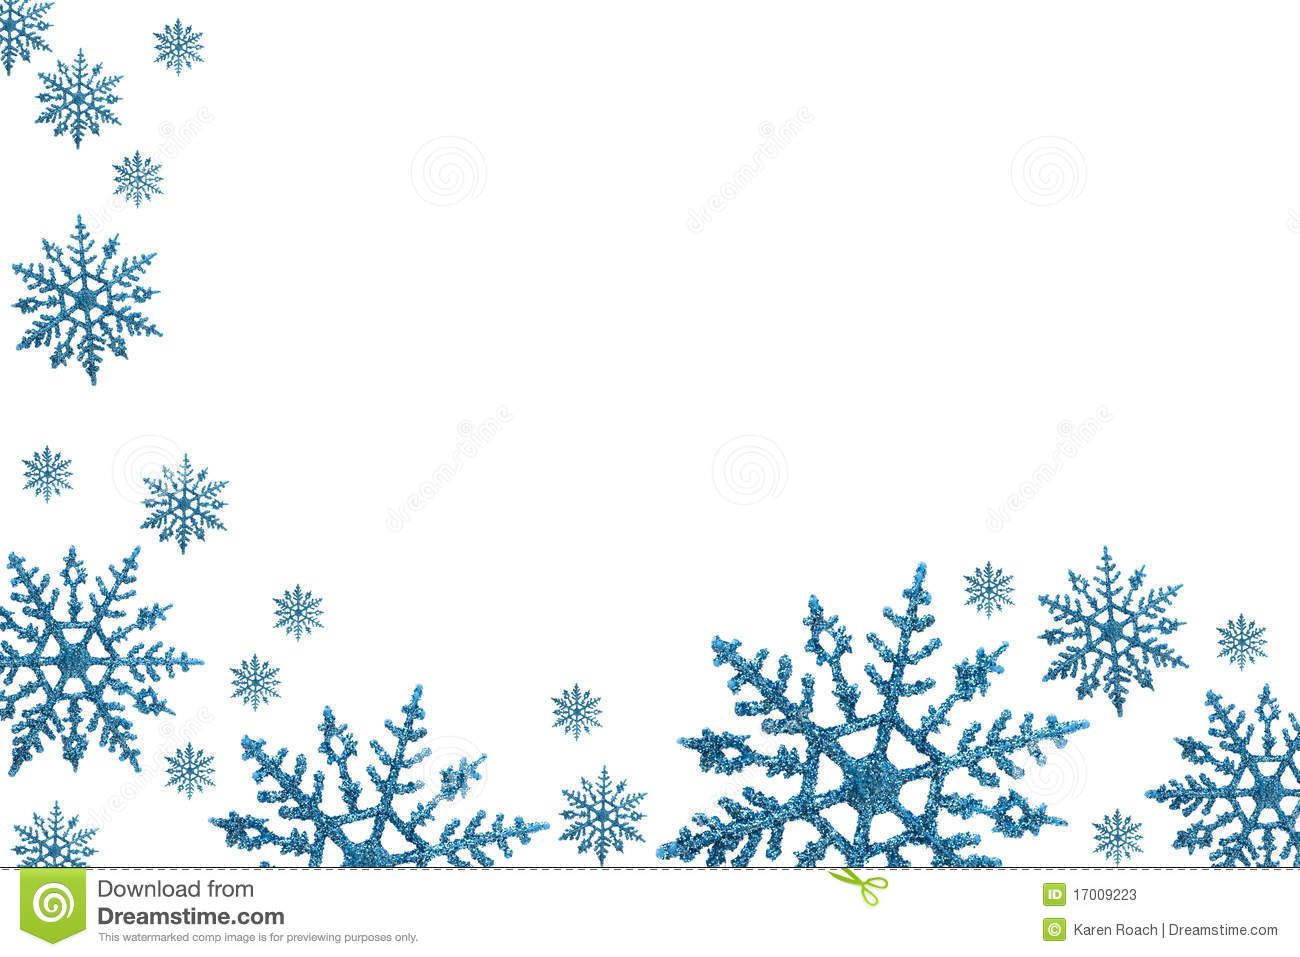 Free clipart borders holiday jpg free download Winter Border Clipart Winter Border Clipart Winter Border Clipart ... jpg free download